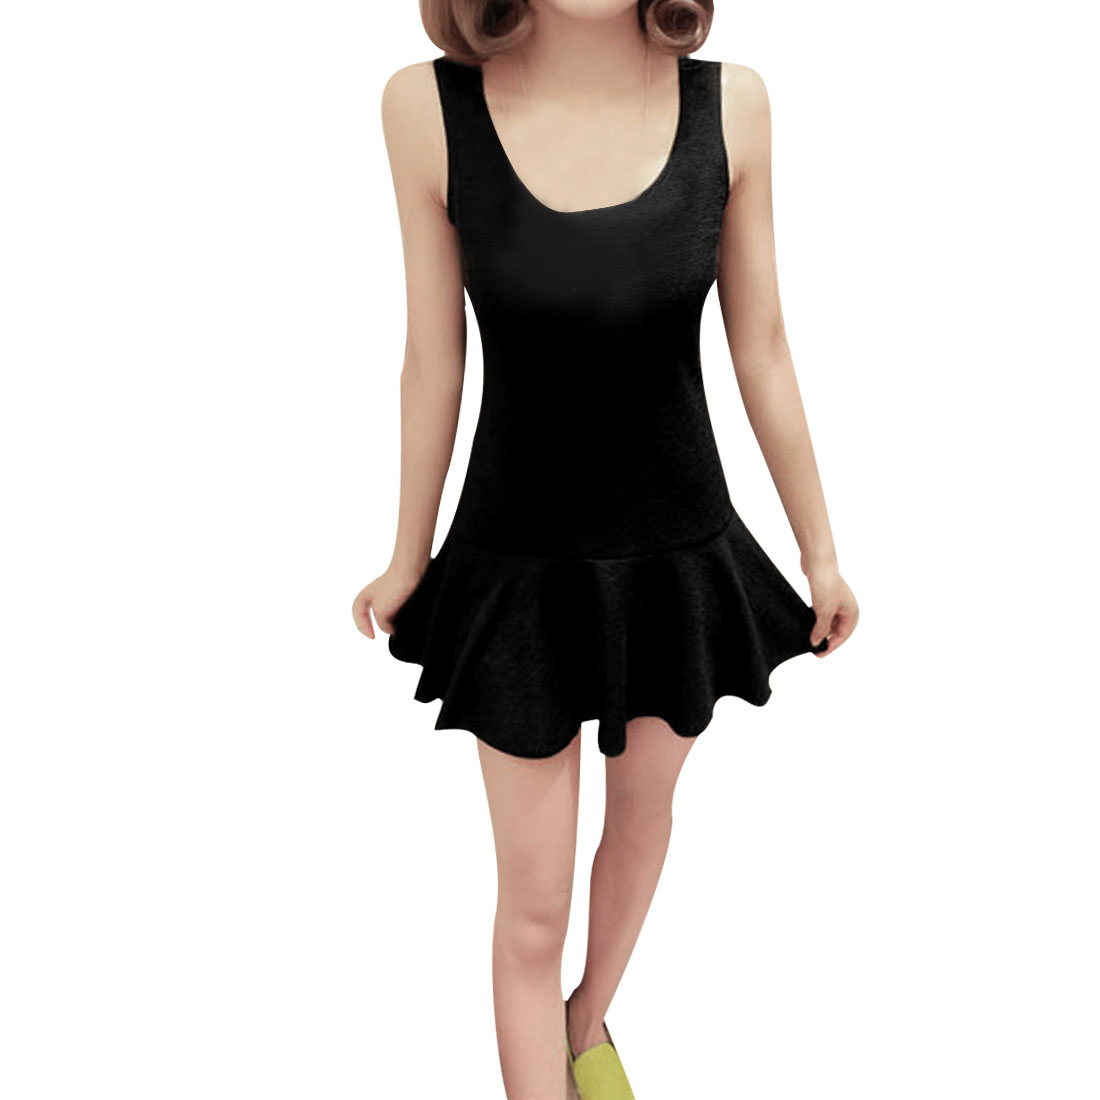 Women Scoop Neck Sleeveless Flouncing Hem Mini Dress Black XS